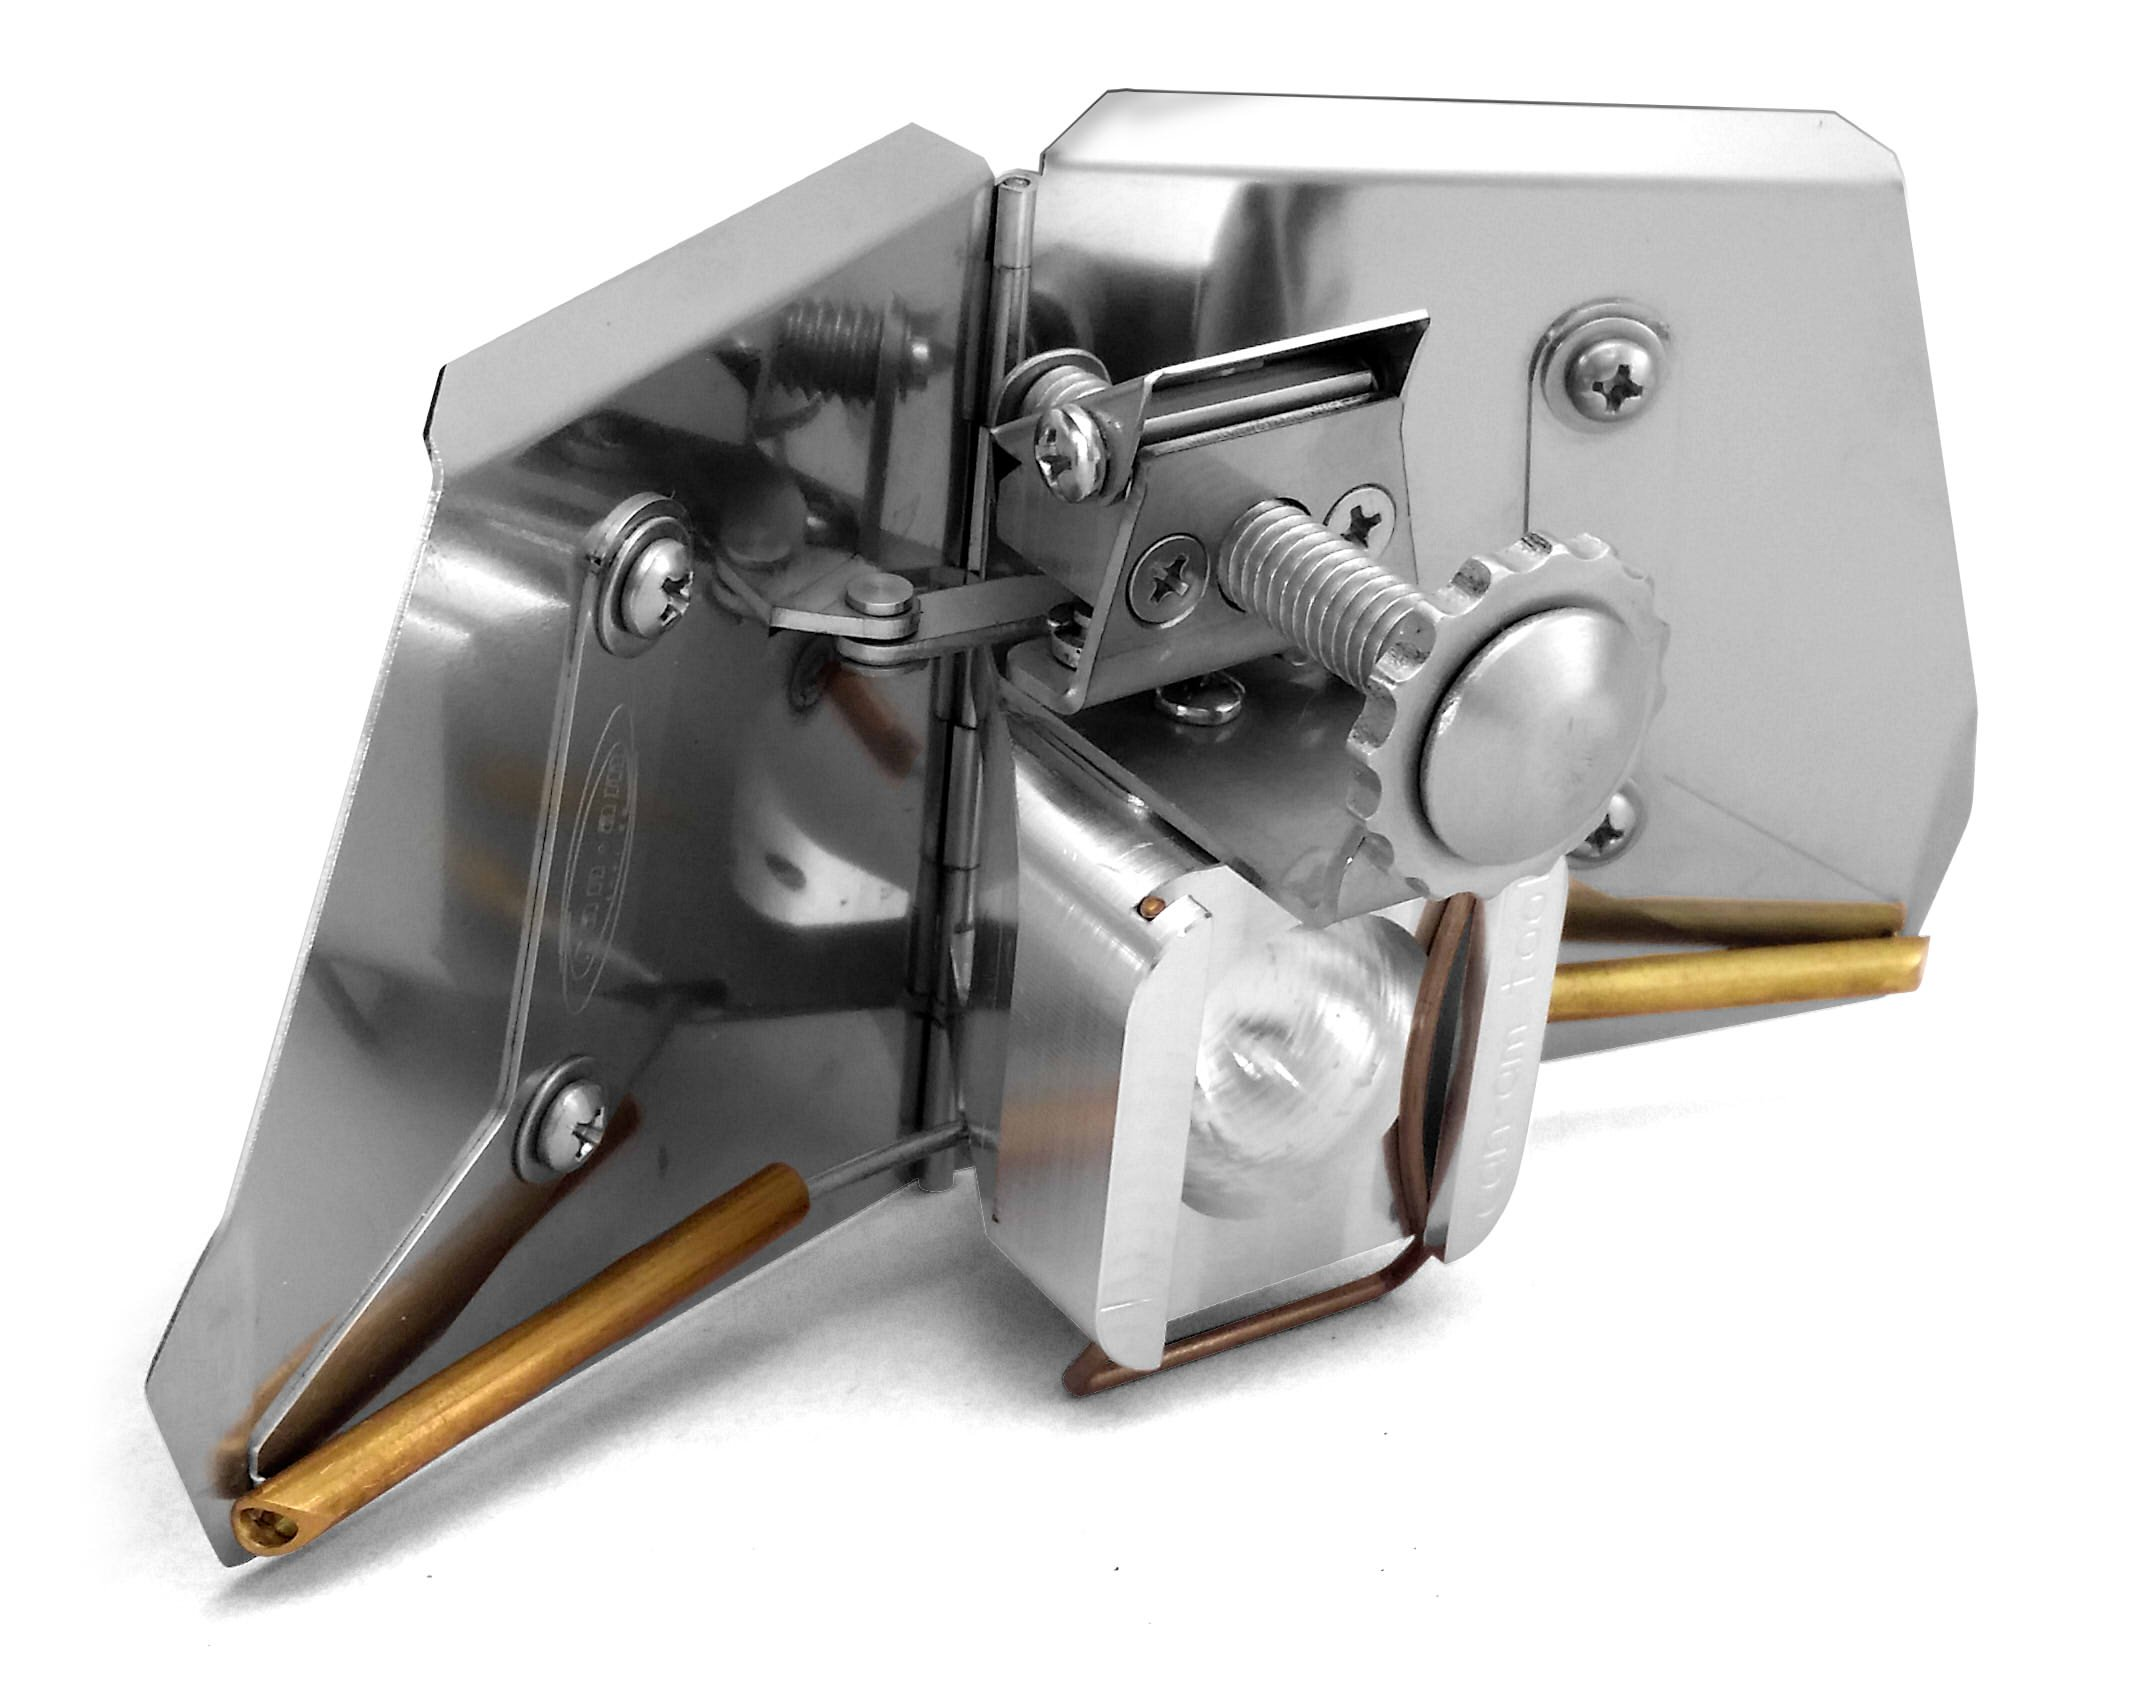 CanAm Tool B1400 Accu-Just Corner Flusher 3.5 Inch - Specially Designed For Finishing Any Inside Angle On Skim Coats